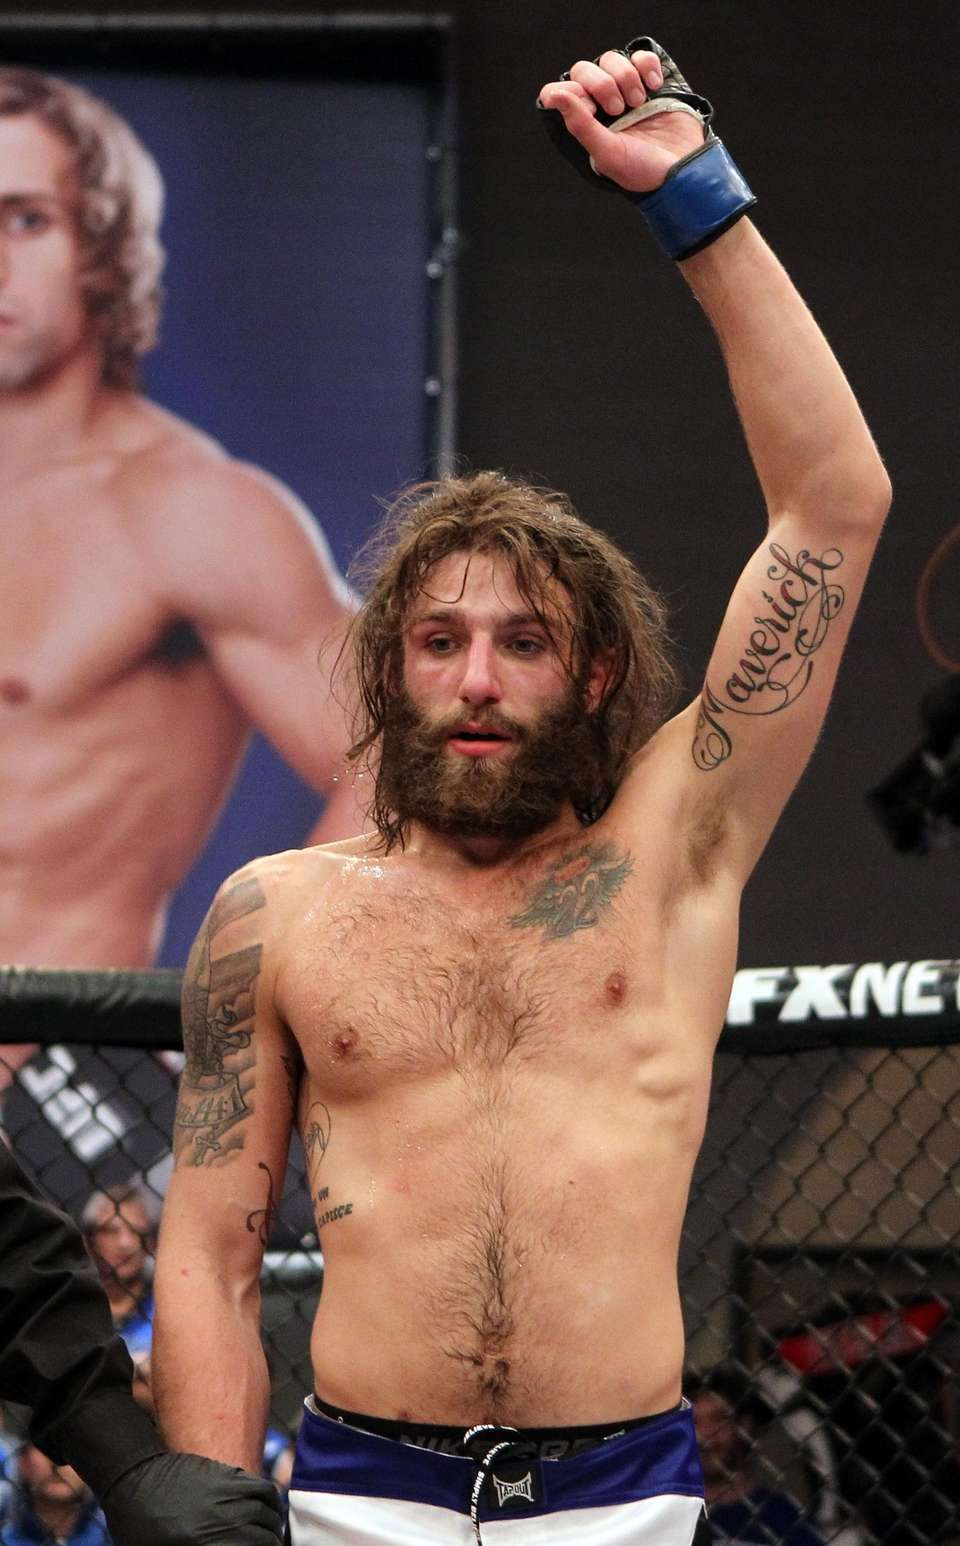 Season 15 champion, lightweights: Chiesa's father passed away